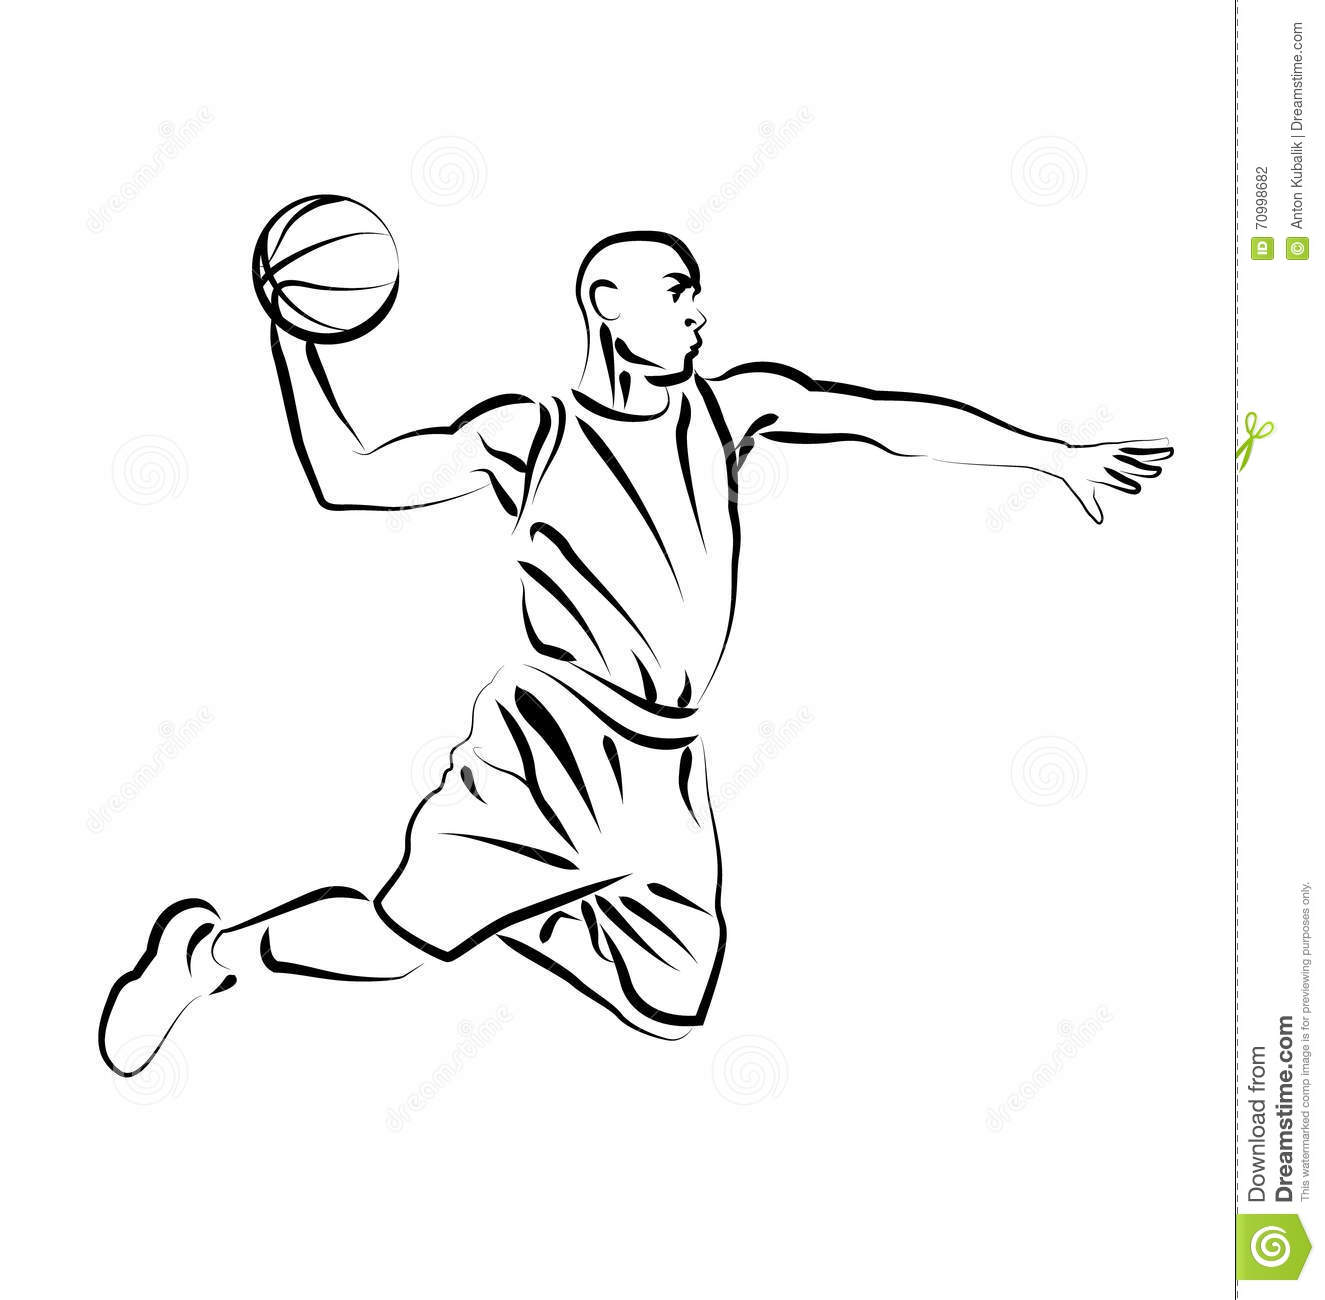 Vector Line Sketch Basketball Player Stock Vector - Illustration Of Game Abstract 70998682